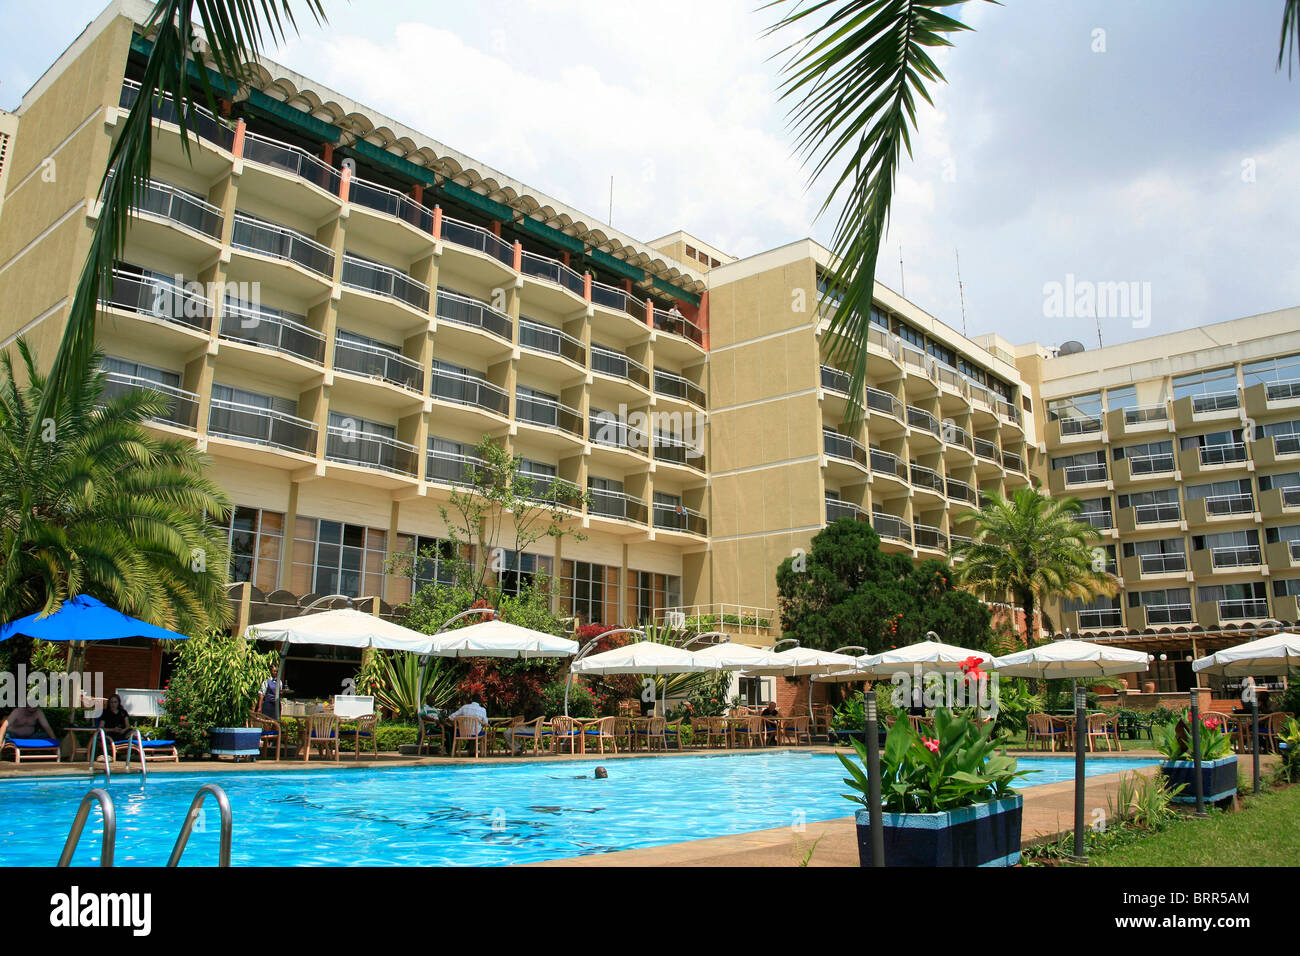 Mille des Collines Hotel hotel made famous movie Hotel Rwanda it is place where terrified Tutsi's took refuge - Stock Image